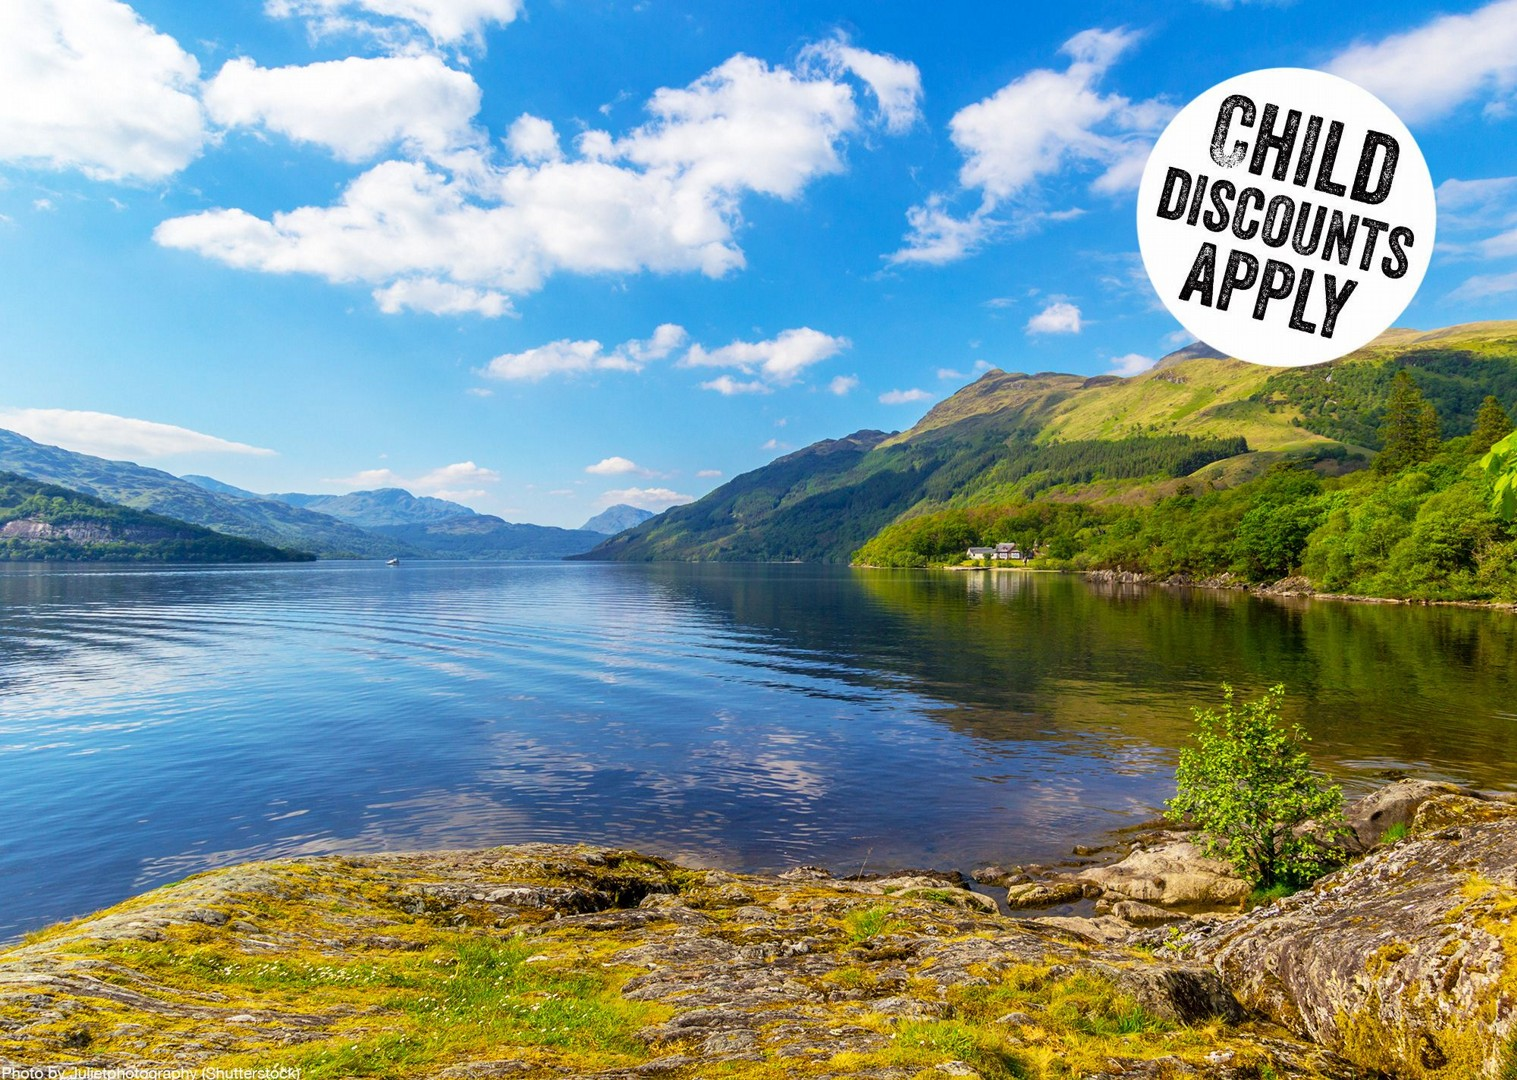 loch-lomond-scotland-uk-cycling-holiday-family-fun.jpg - UK - Scotland - Lochs and Glens - Self-Guided Family Cycling Holiday - Family Cycling